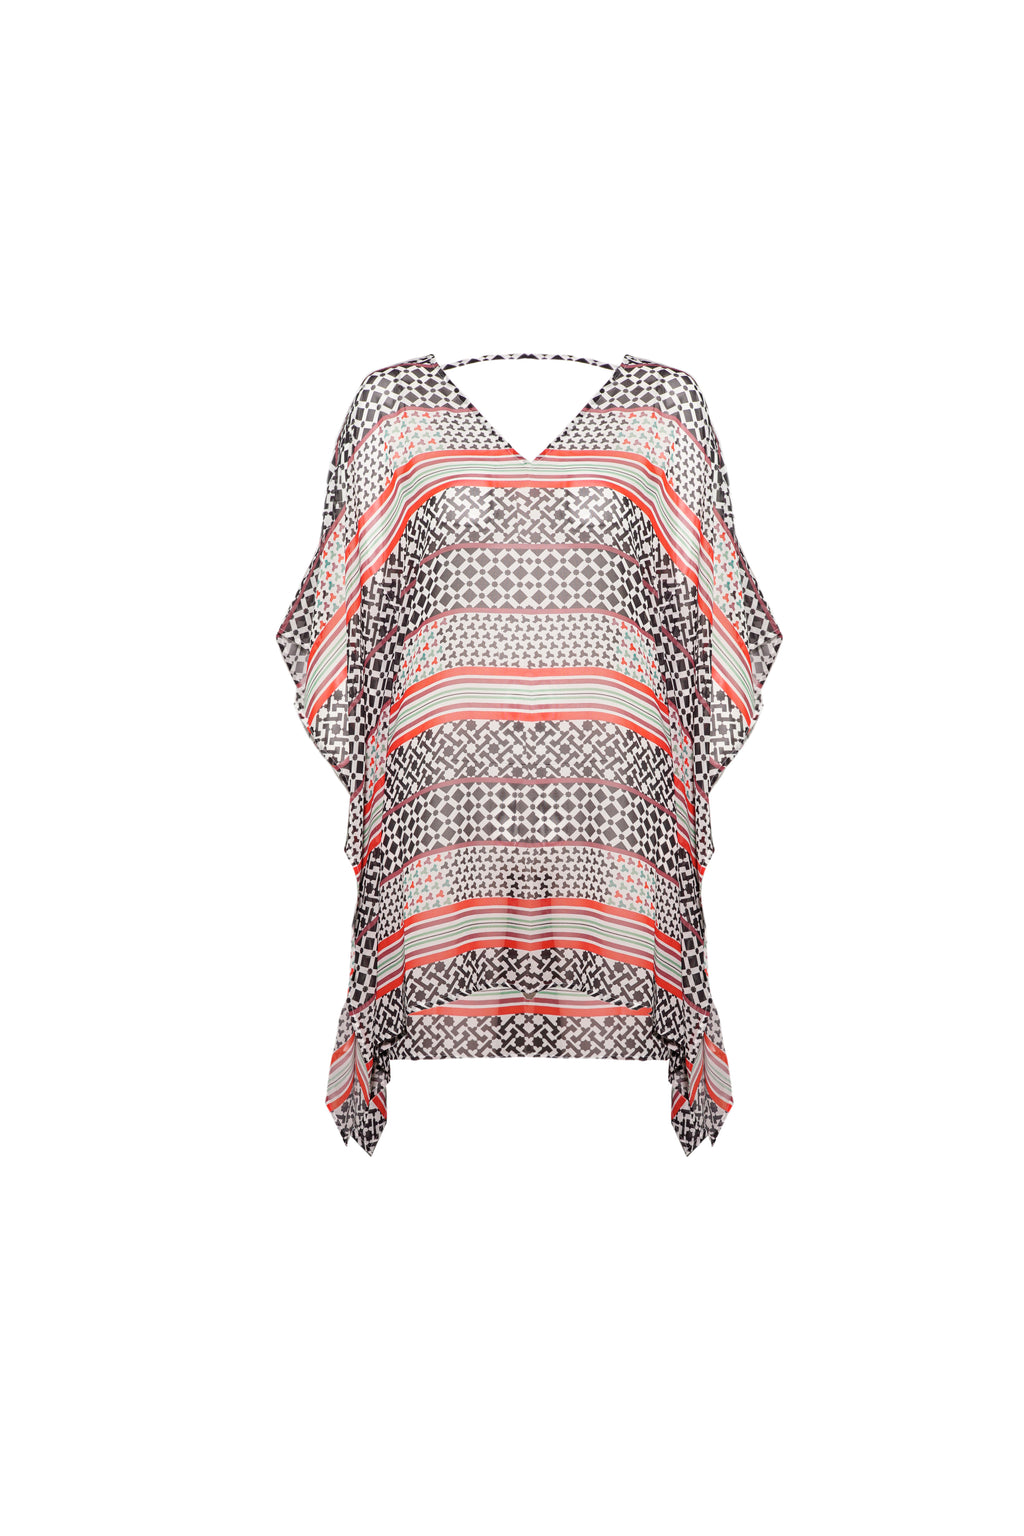 Rock The Kasbah Short Kaftan